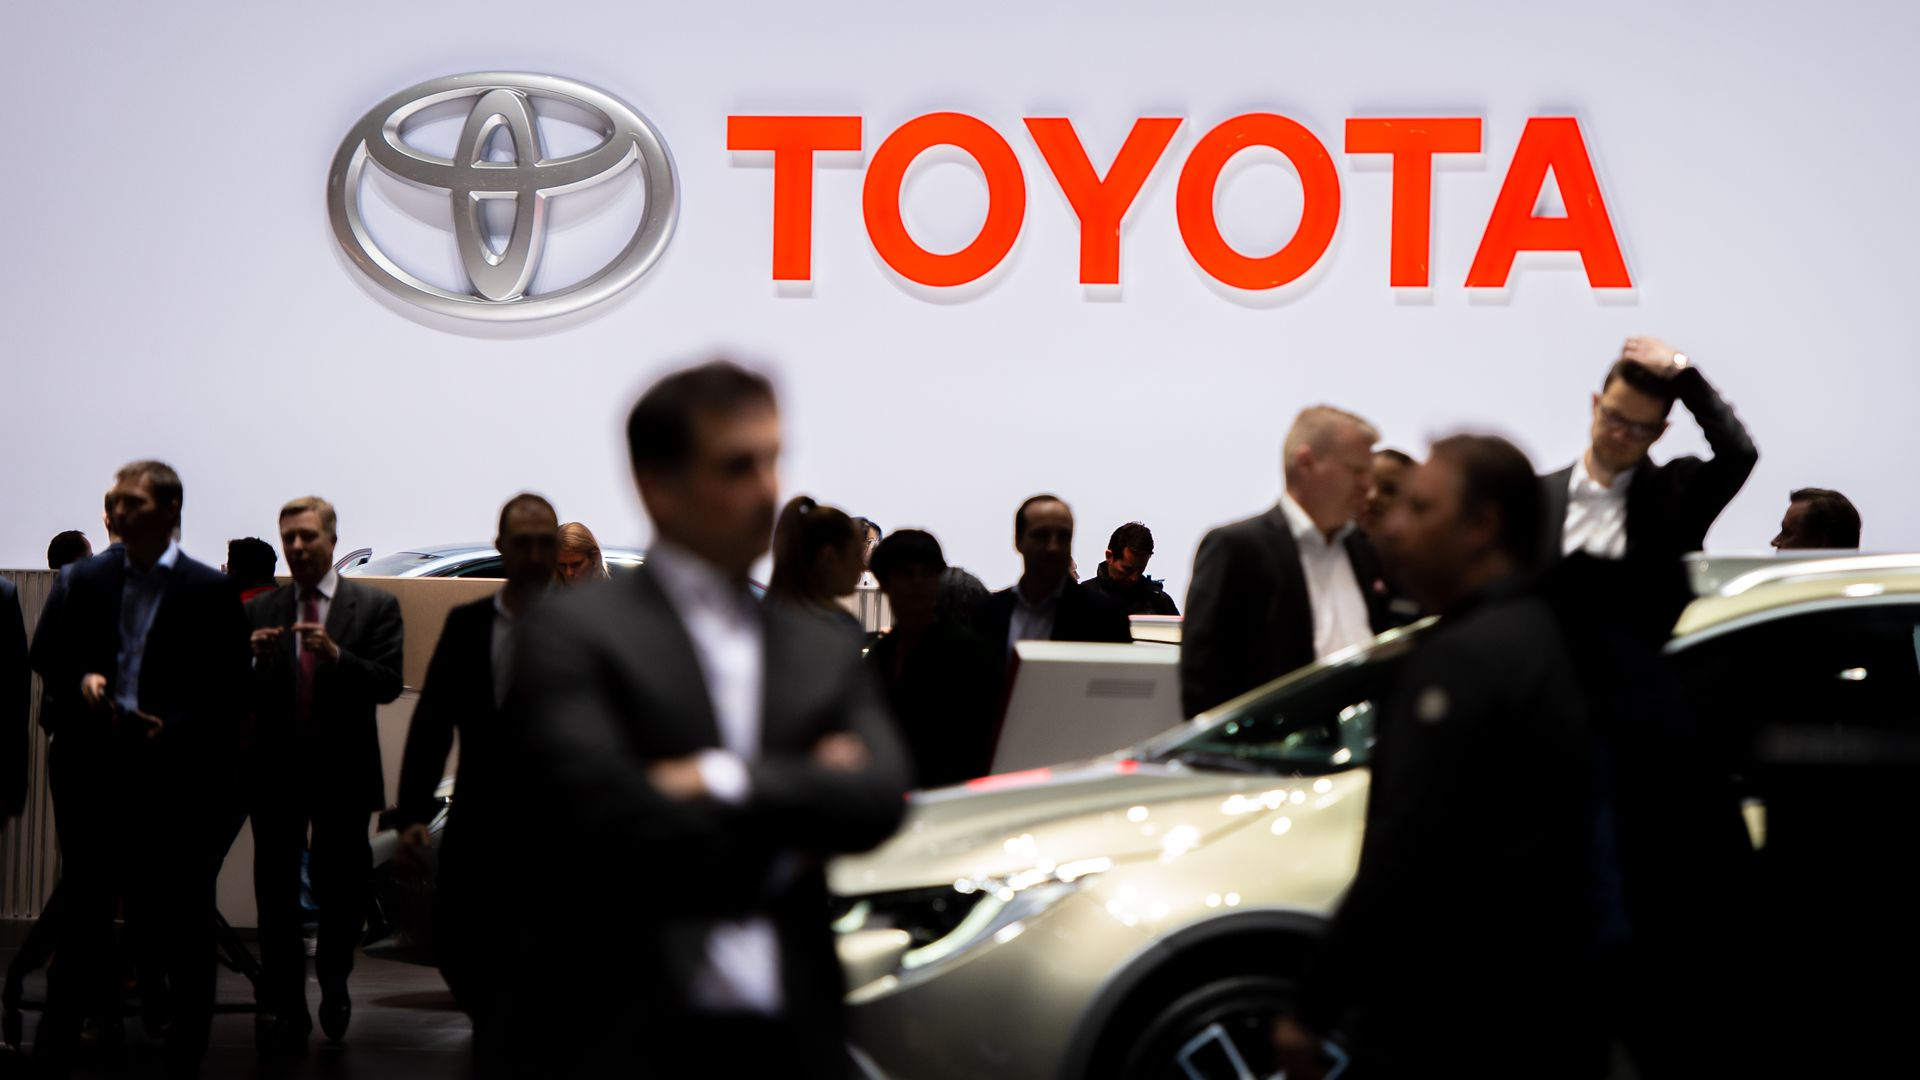 In this image, crowds of mostly suited people walk around a show floor with the Toyota logo overhead.